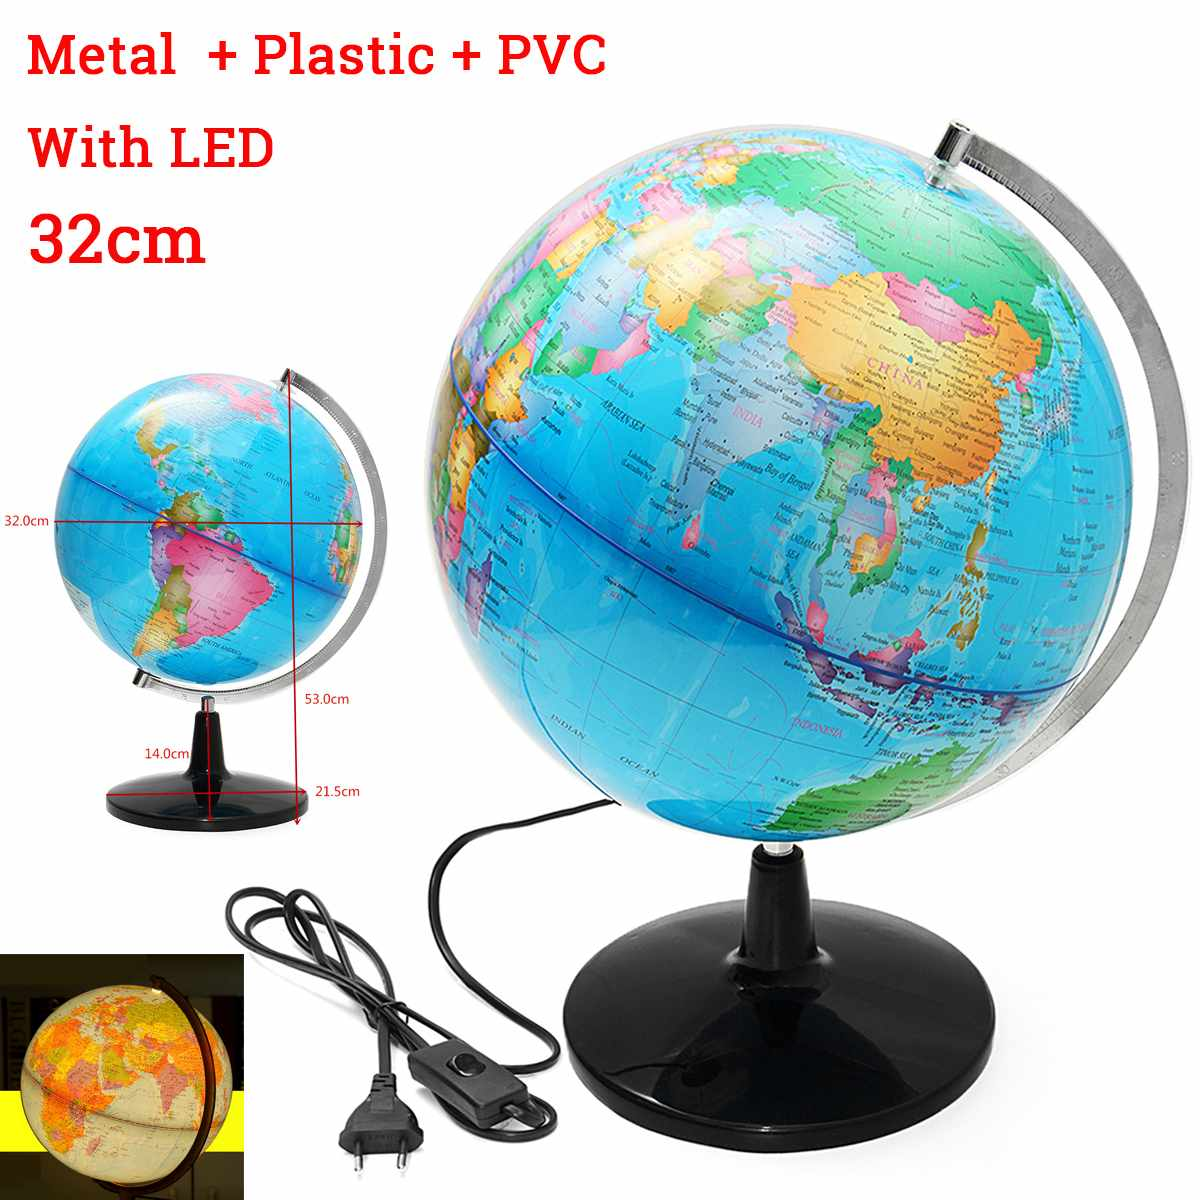 32CM LED Light Terrestrial World Globe Earth Map Geography Education Toy Map With Rotating Stand Home Decoration Office Ornament32CM LED Light Terrestrial World Globe Earth Map Geography Education Toy Map With Rotating Stand Home Decoration Office Ornament